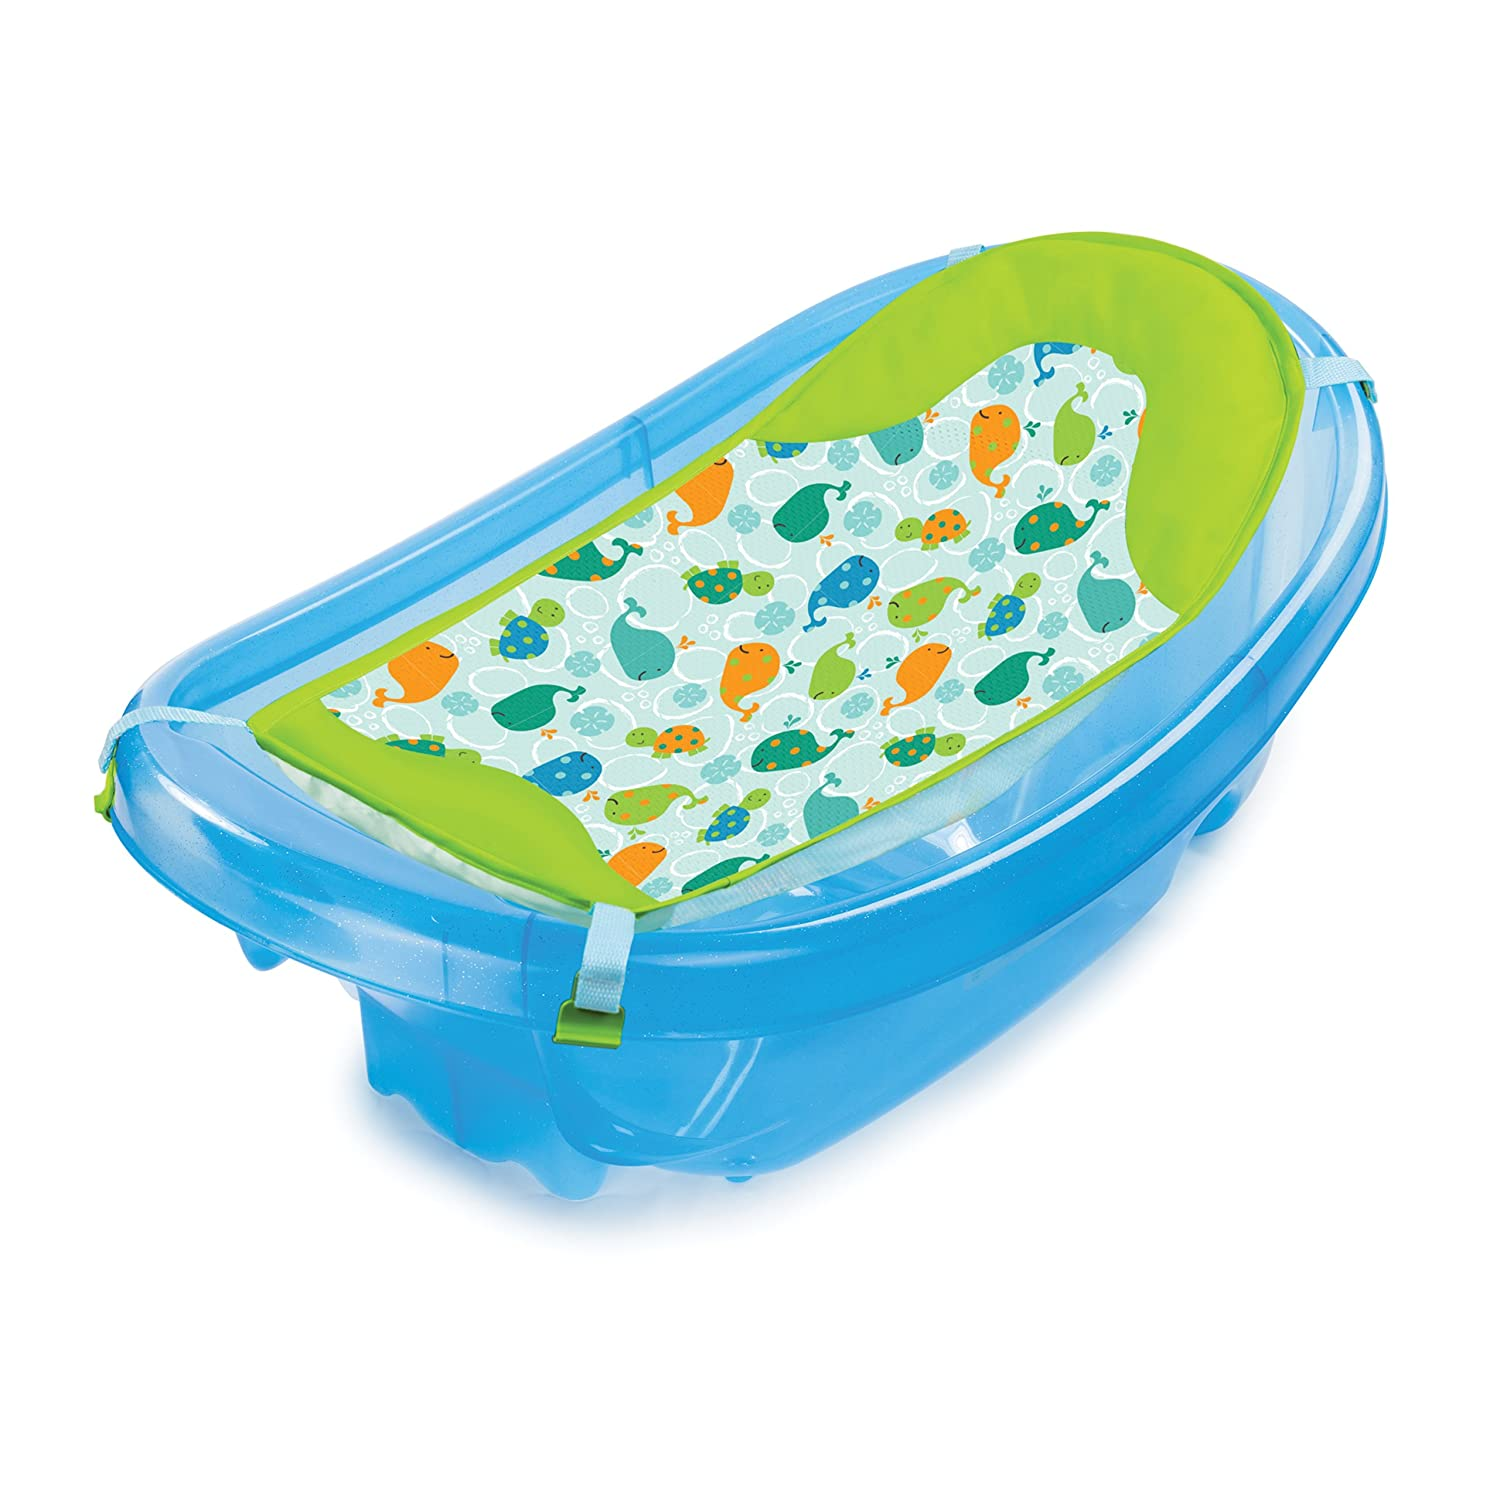 Summer Infant Sparkle and Splash Tub (Blue): Amazon.co.uk: Baby